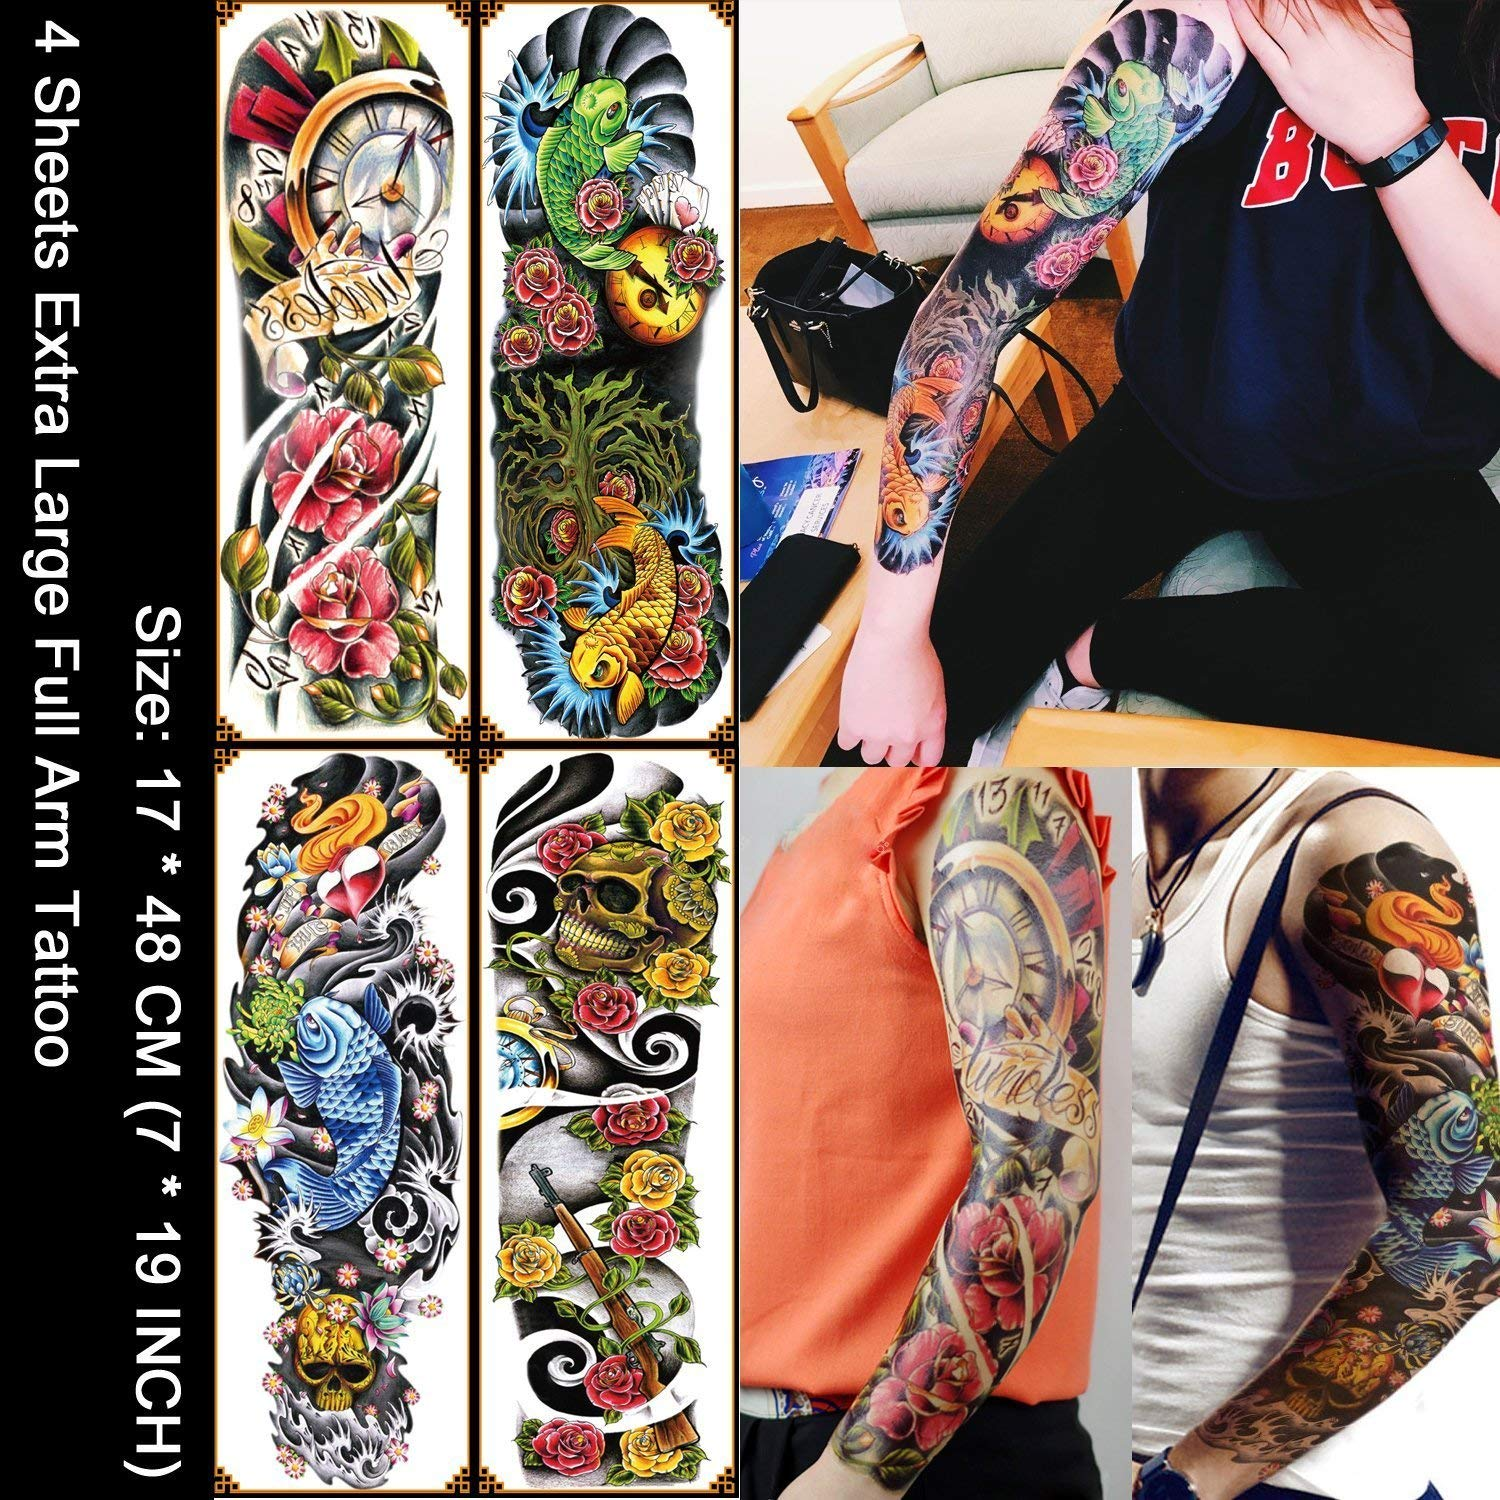 b445554c9 Get Quotations · EYLEER 4 Sheets Realistic Temporary Tattoos Cover  Set,Large Full Arm Temporary Tattoo Waterproof Tattoos